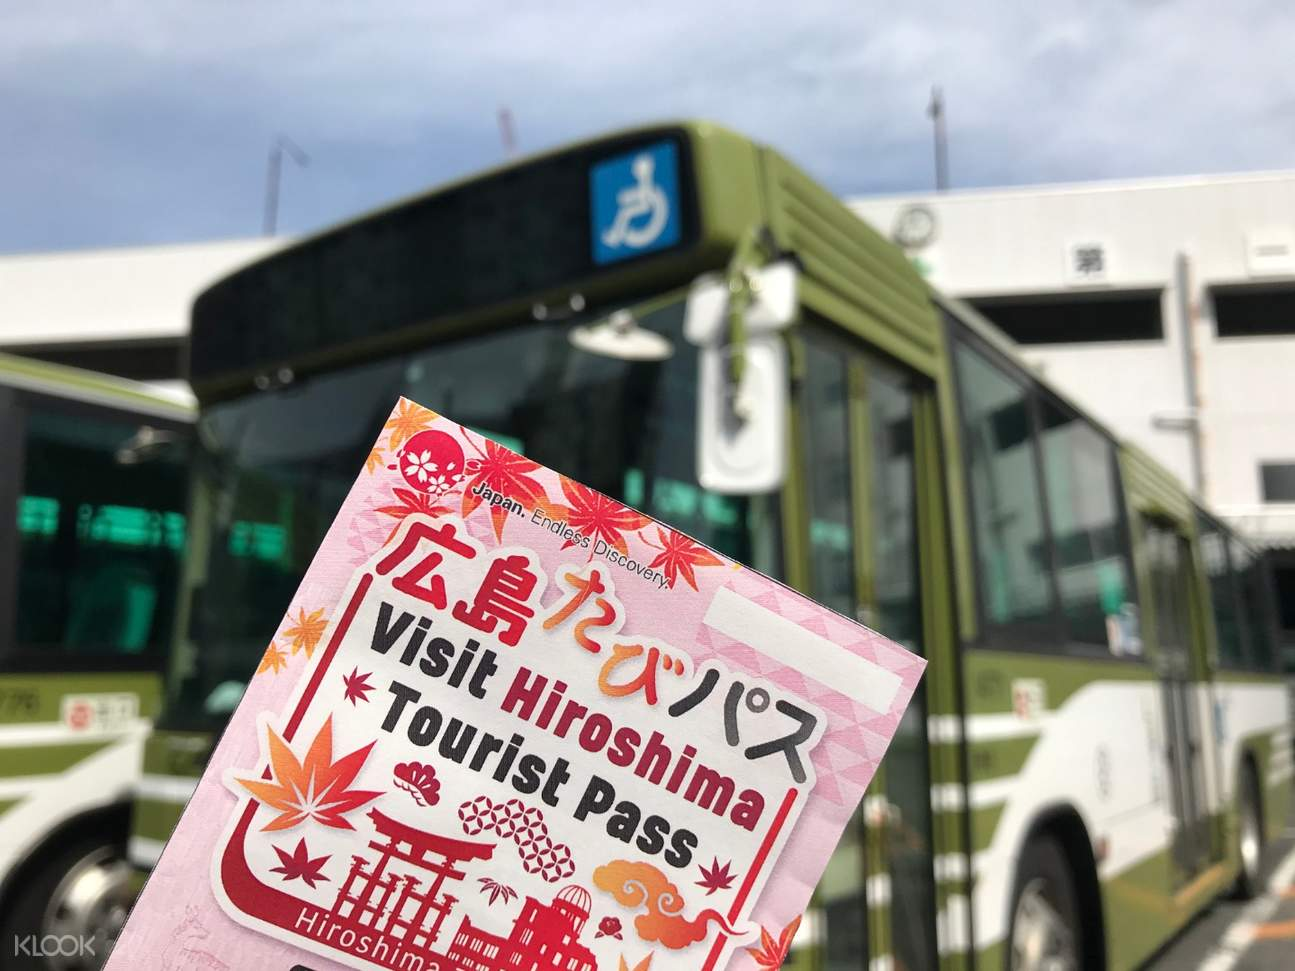 Hiroshima Tourist Pass being held up; there's a view of a bus